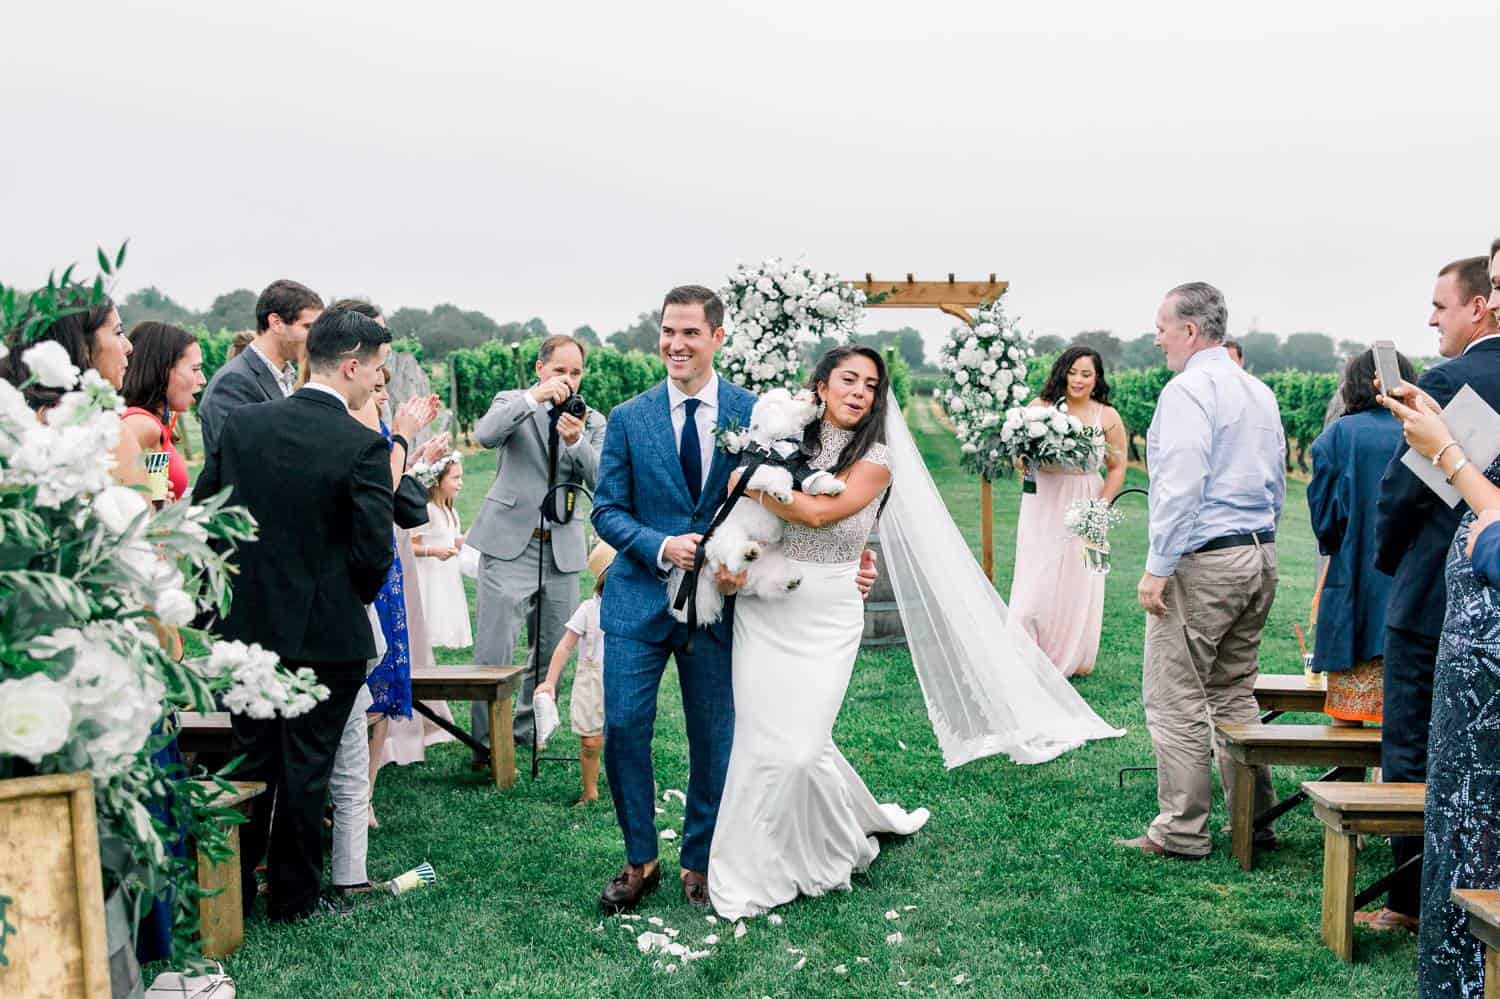 A newly married couple walks down the aisle carrying their fluffy white dog as their guests stand and cheer.